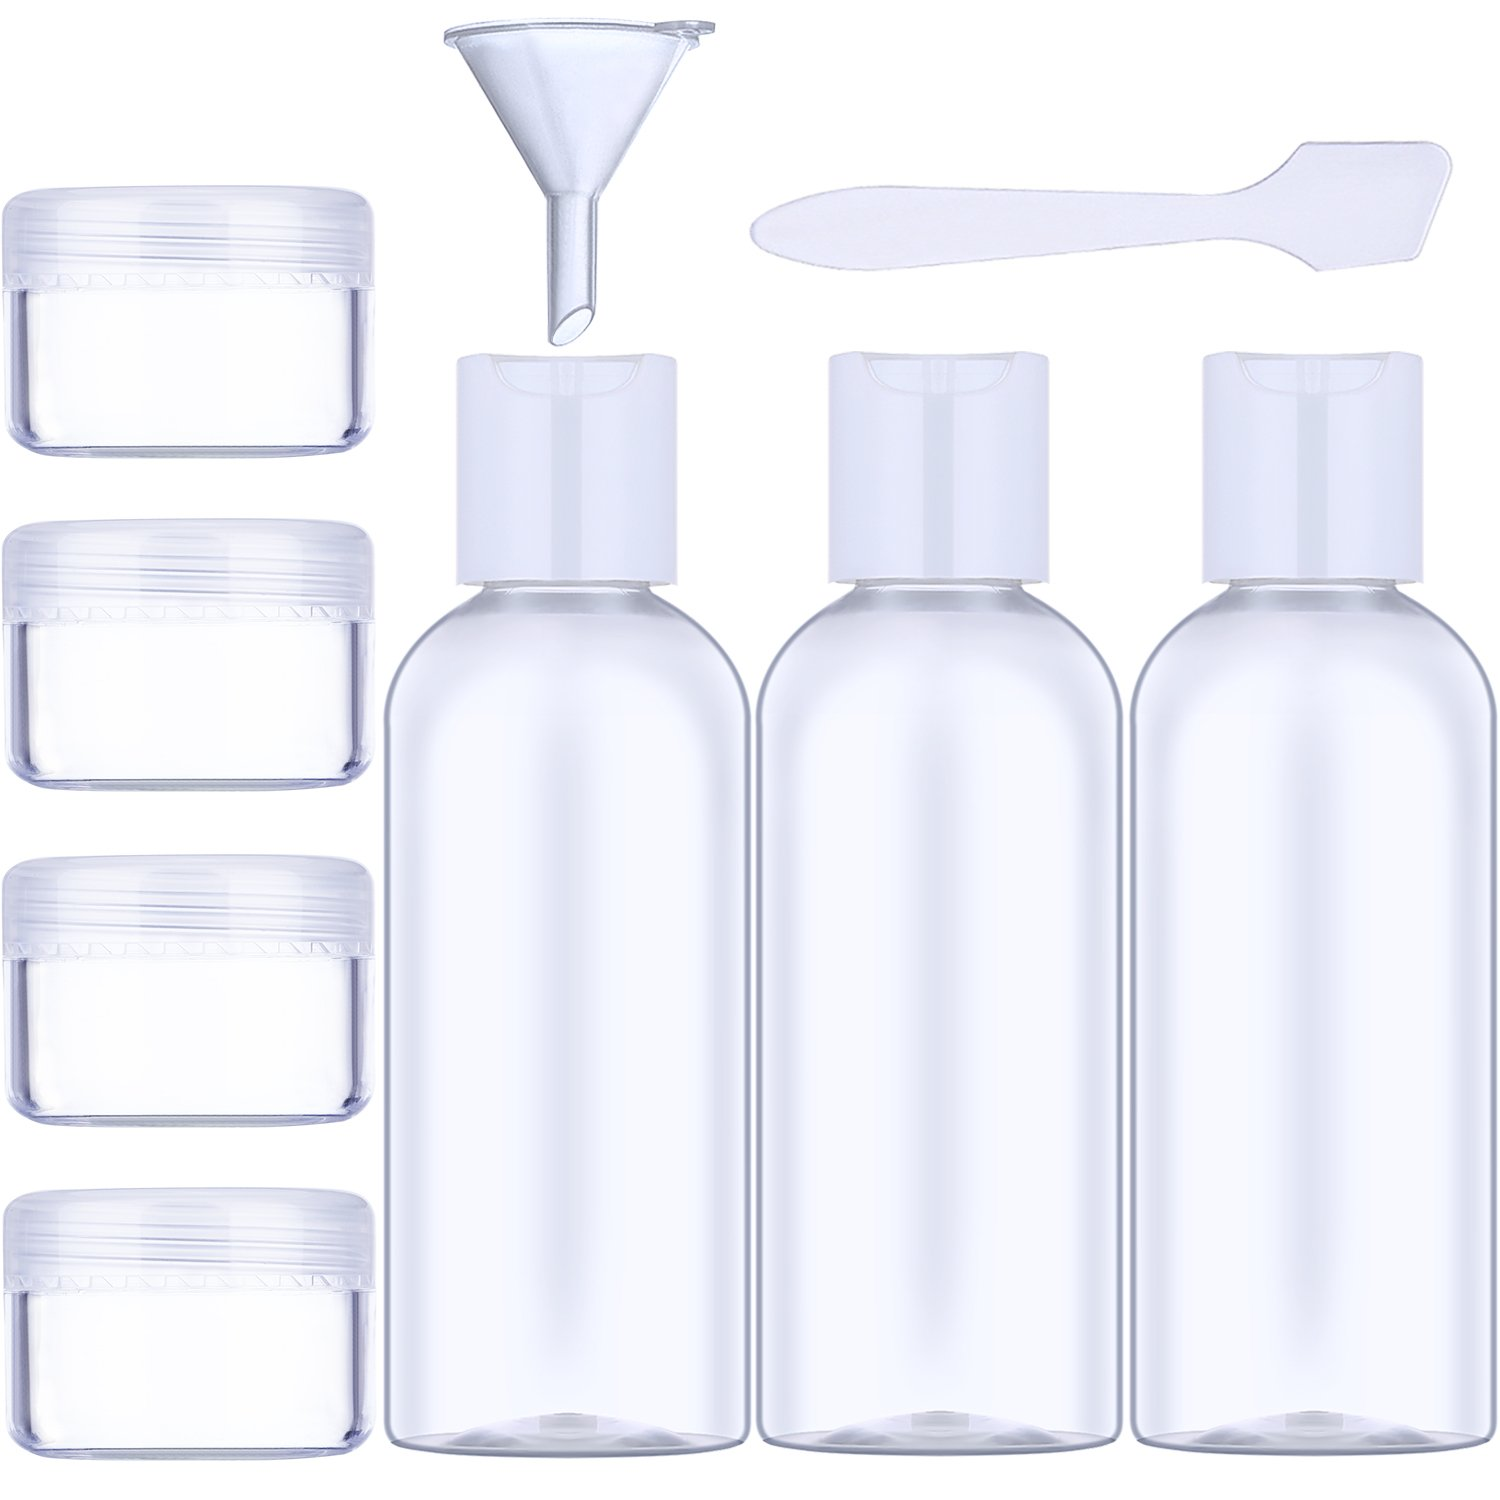 Clear Travel Bottle Set and Toiletries Liquid Containers, 9 Pieces in Total (50 ML)